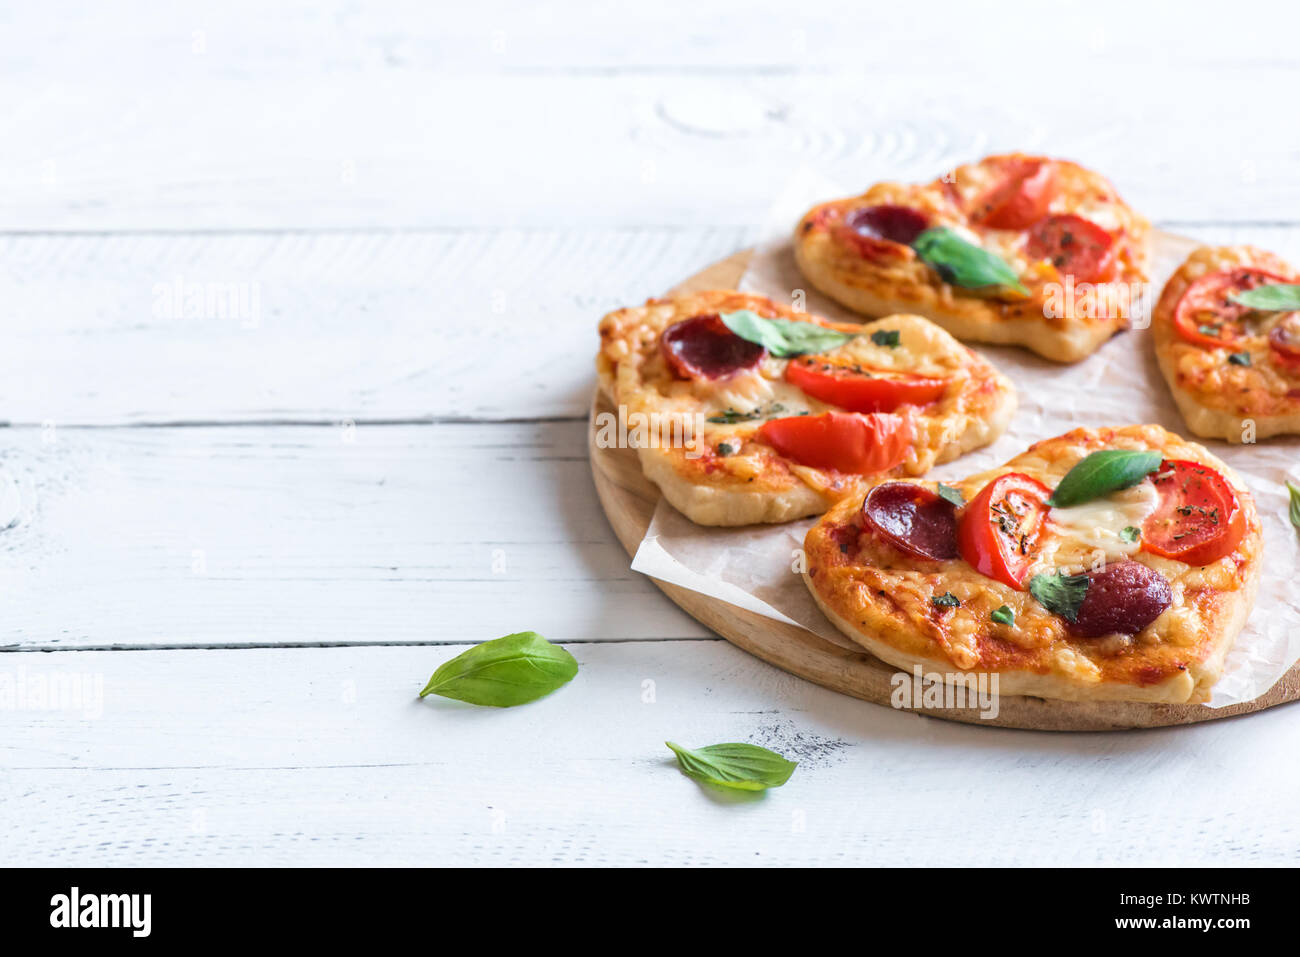 Heart shaped mini pizzas over wooden background with copy space. Mini pizzas with tomatoes, pepperoni, mozzarella - Stock Image